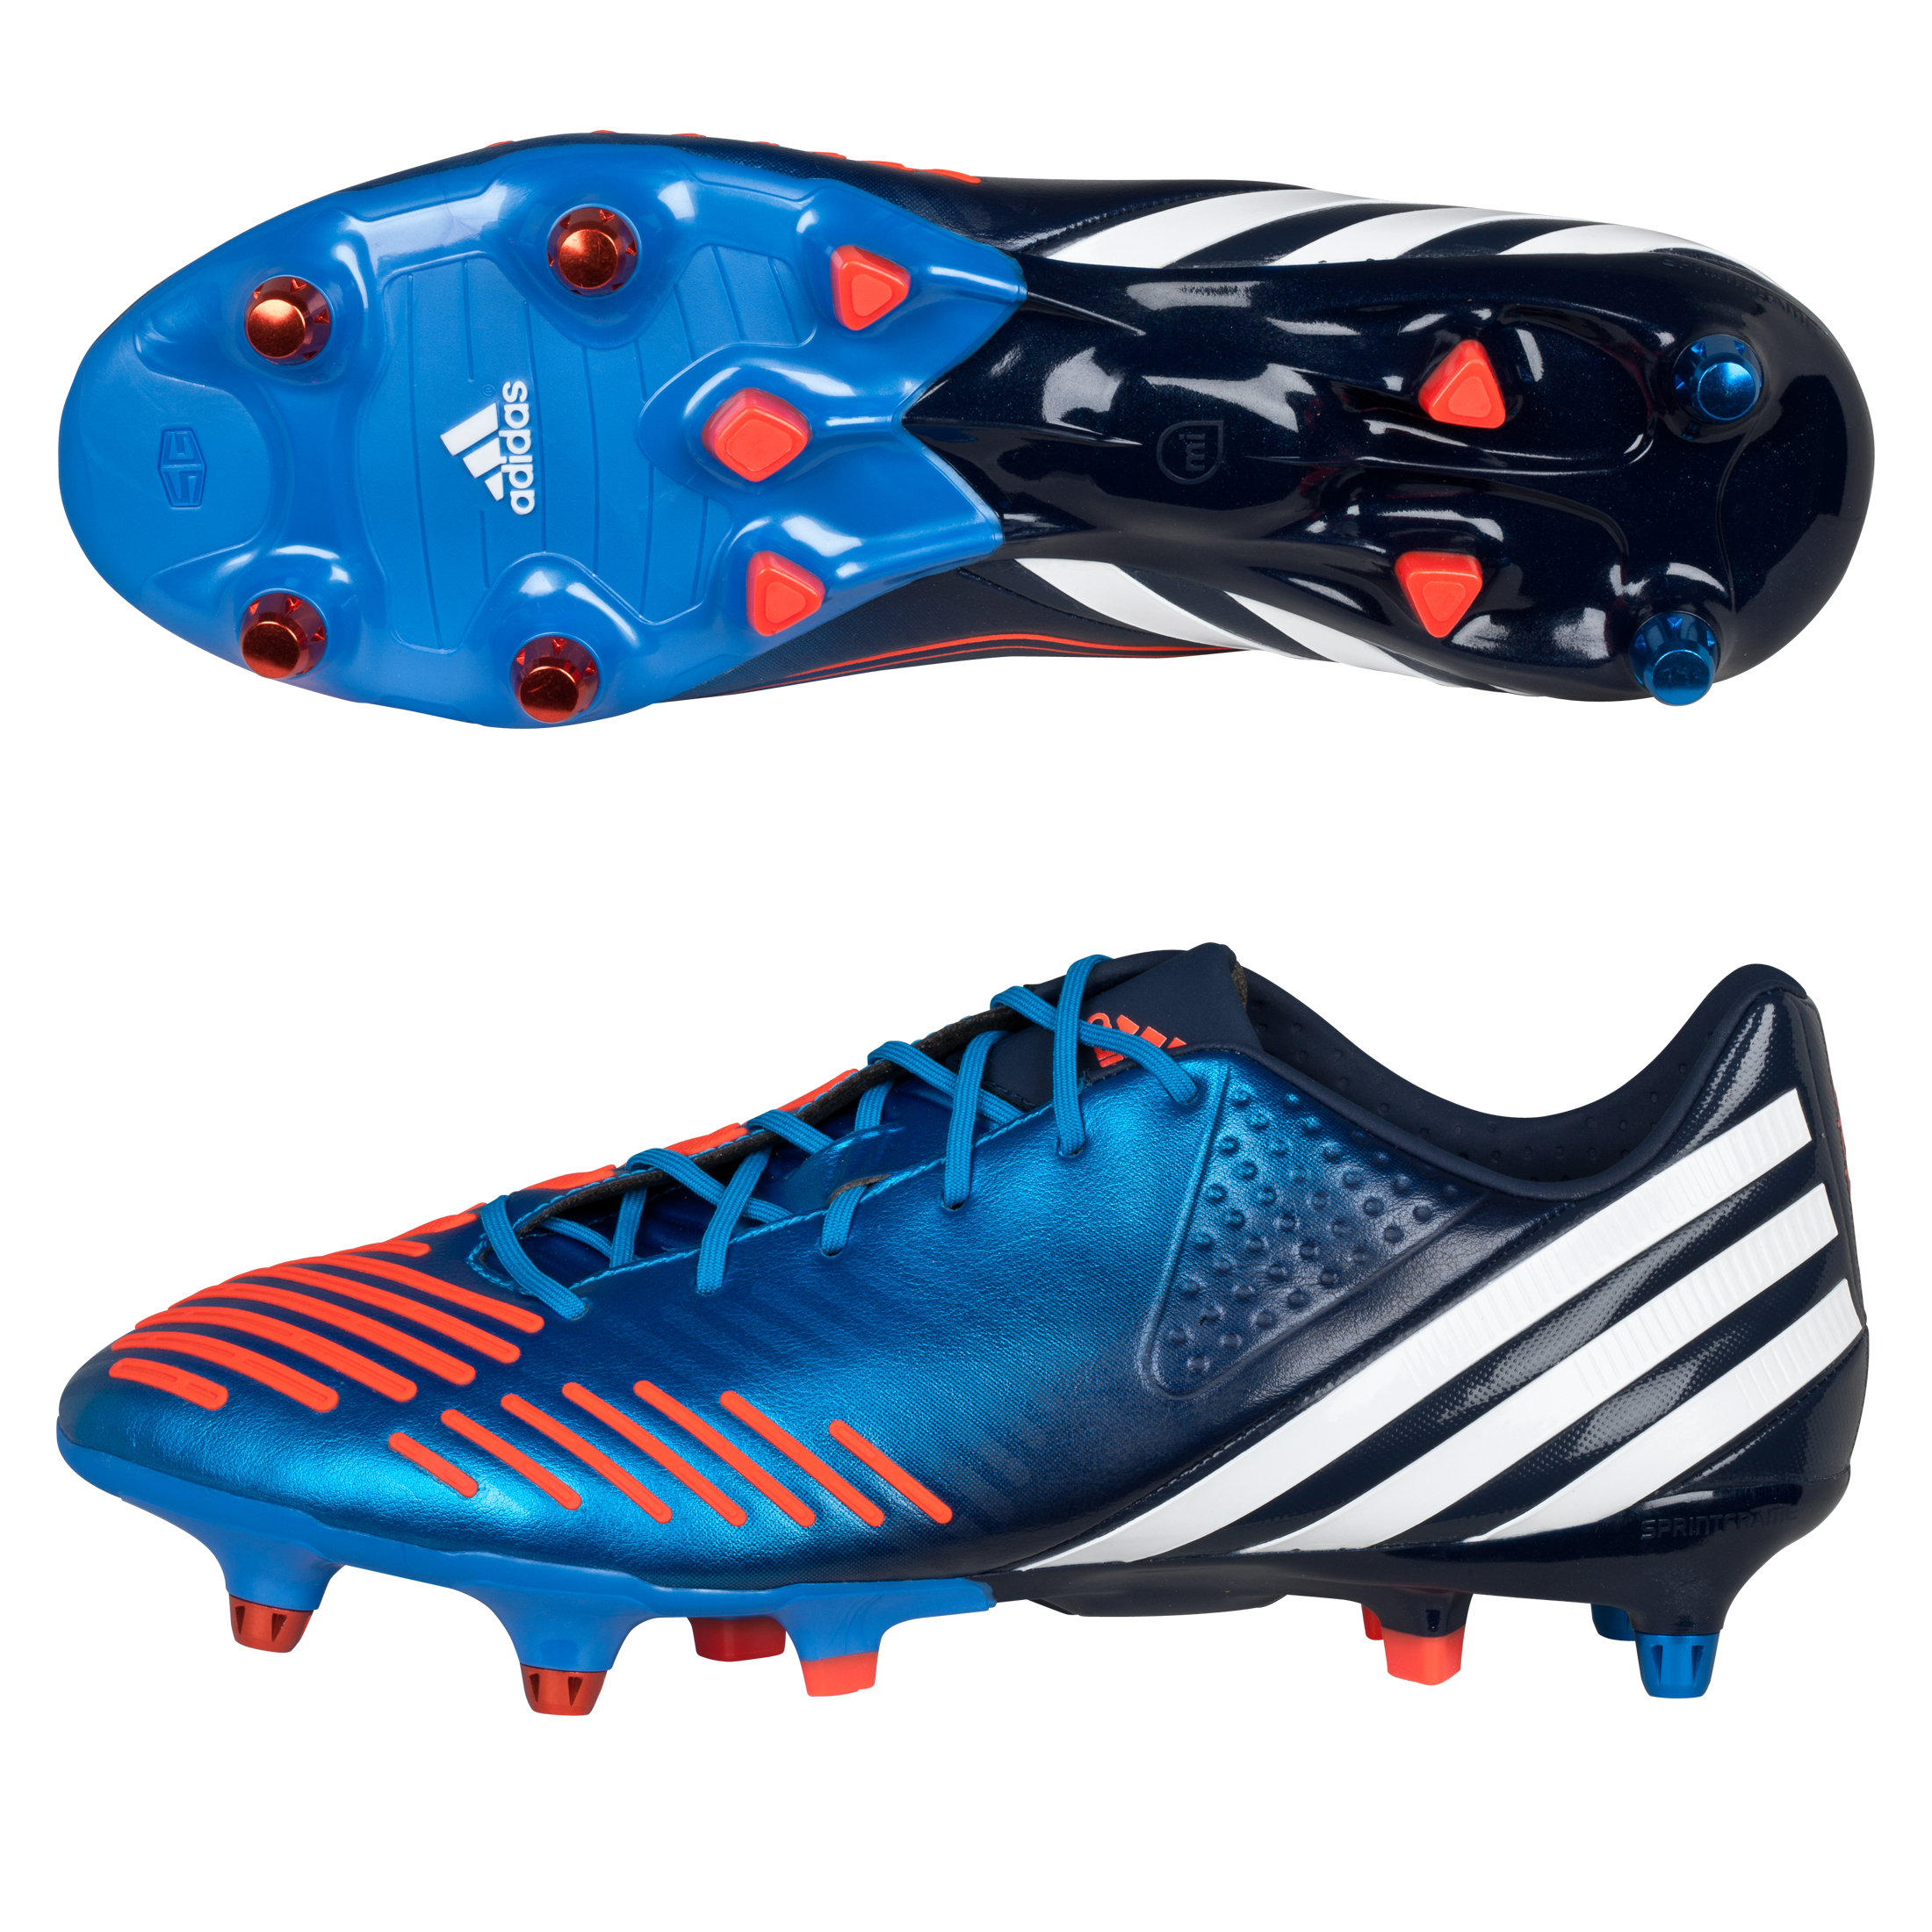 Predator LZ XTRX SG Bright Blue/White/Infrared